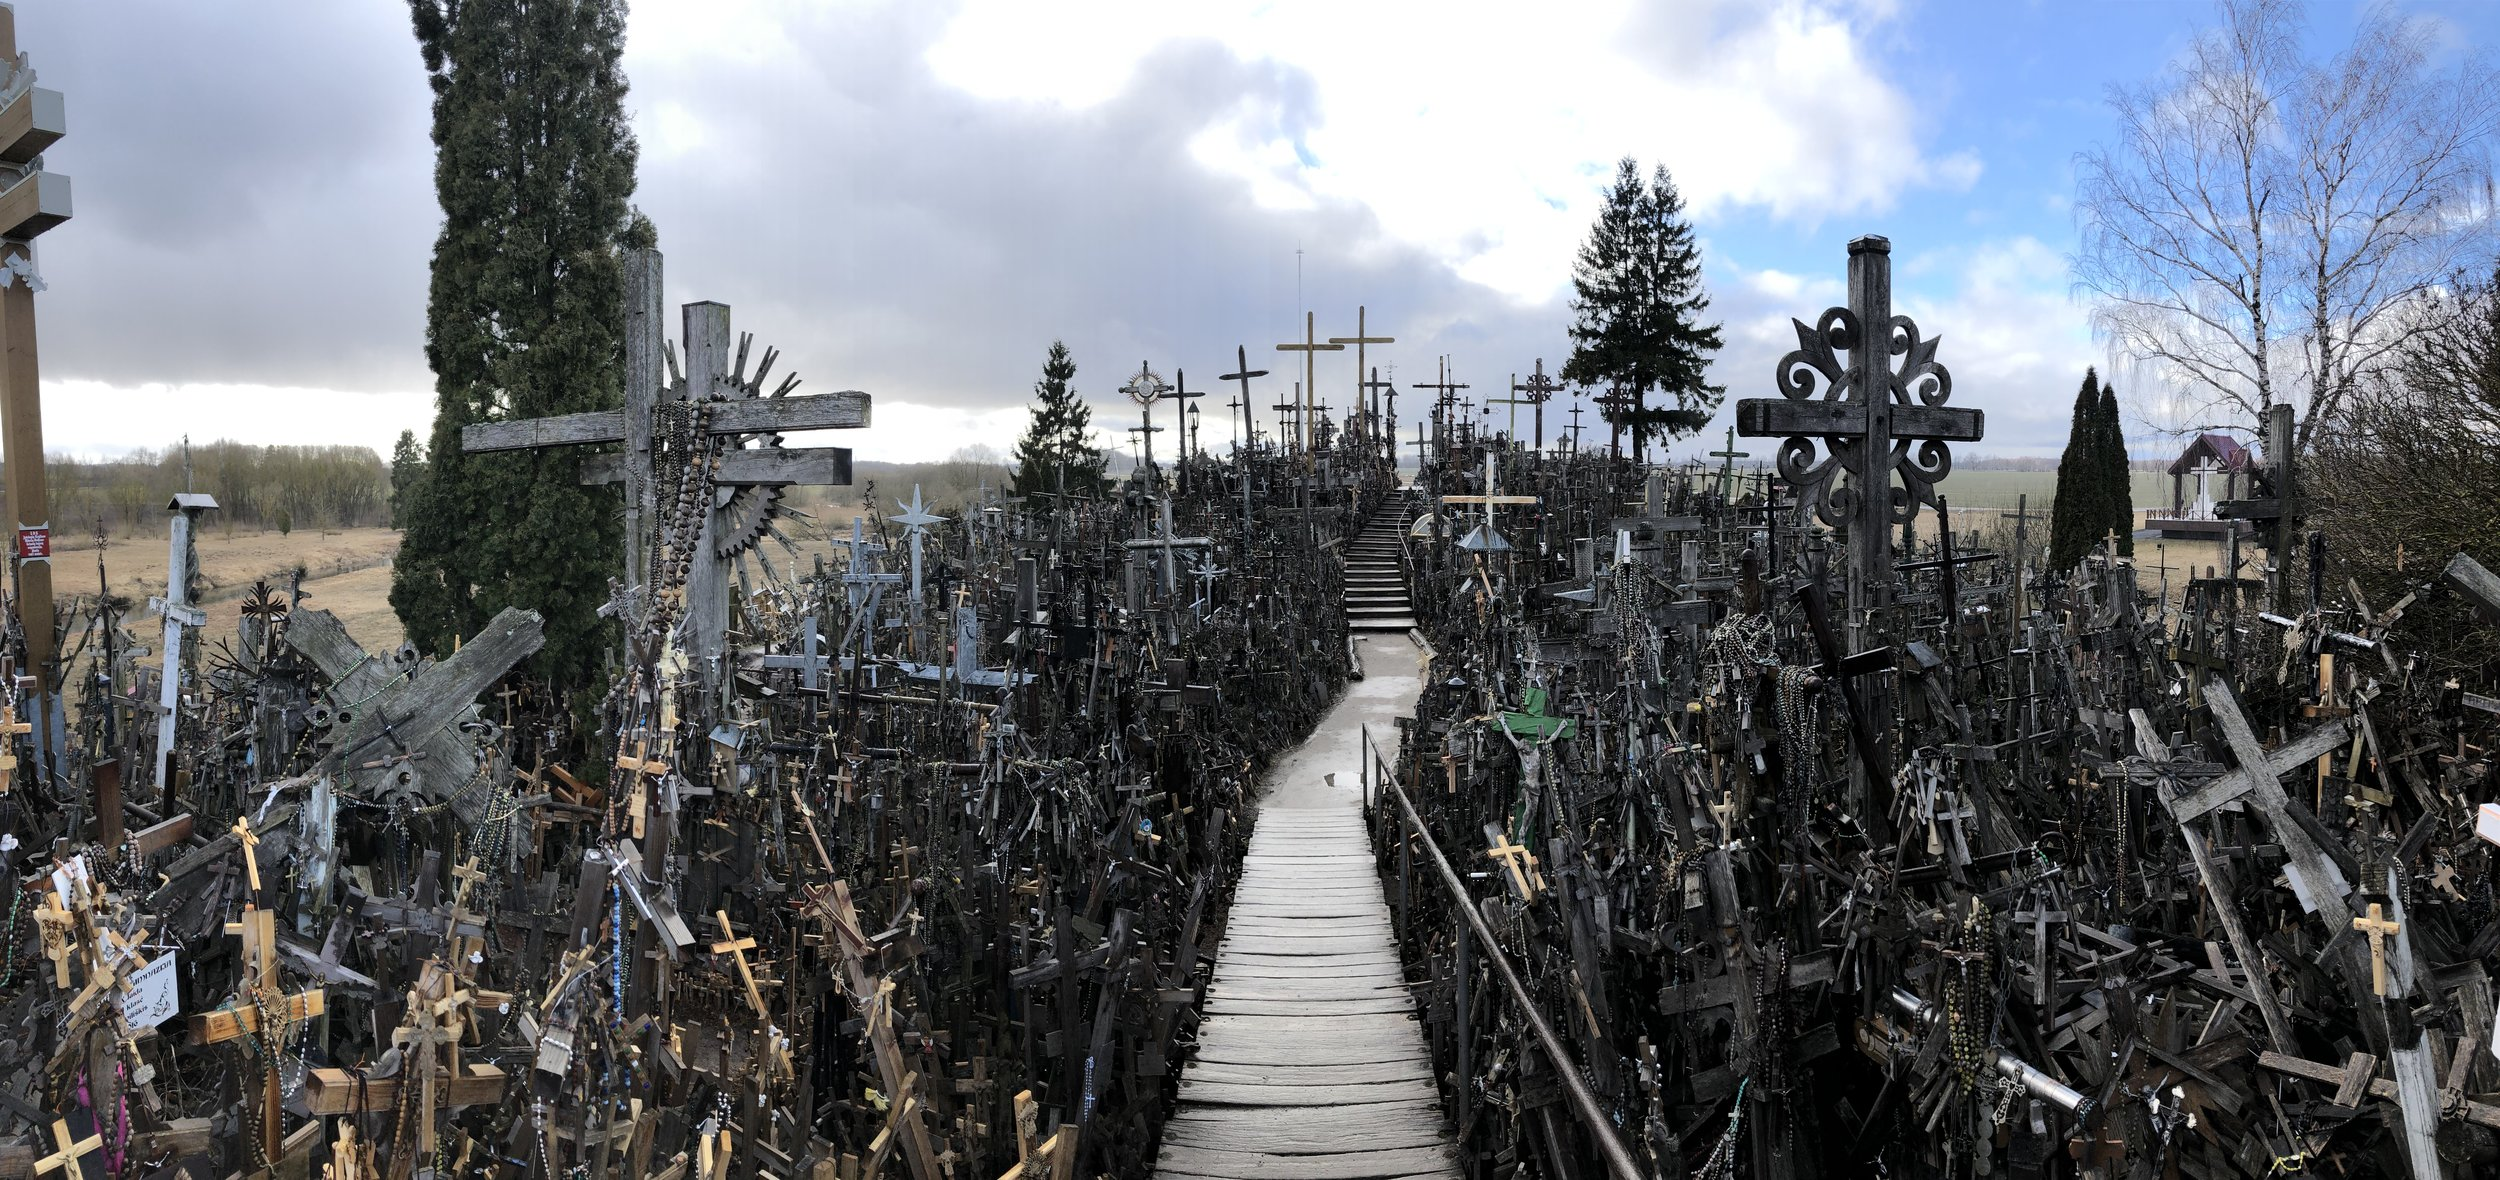 Hill of Crosses, near Siauliai